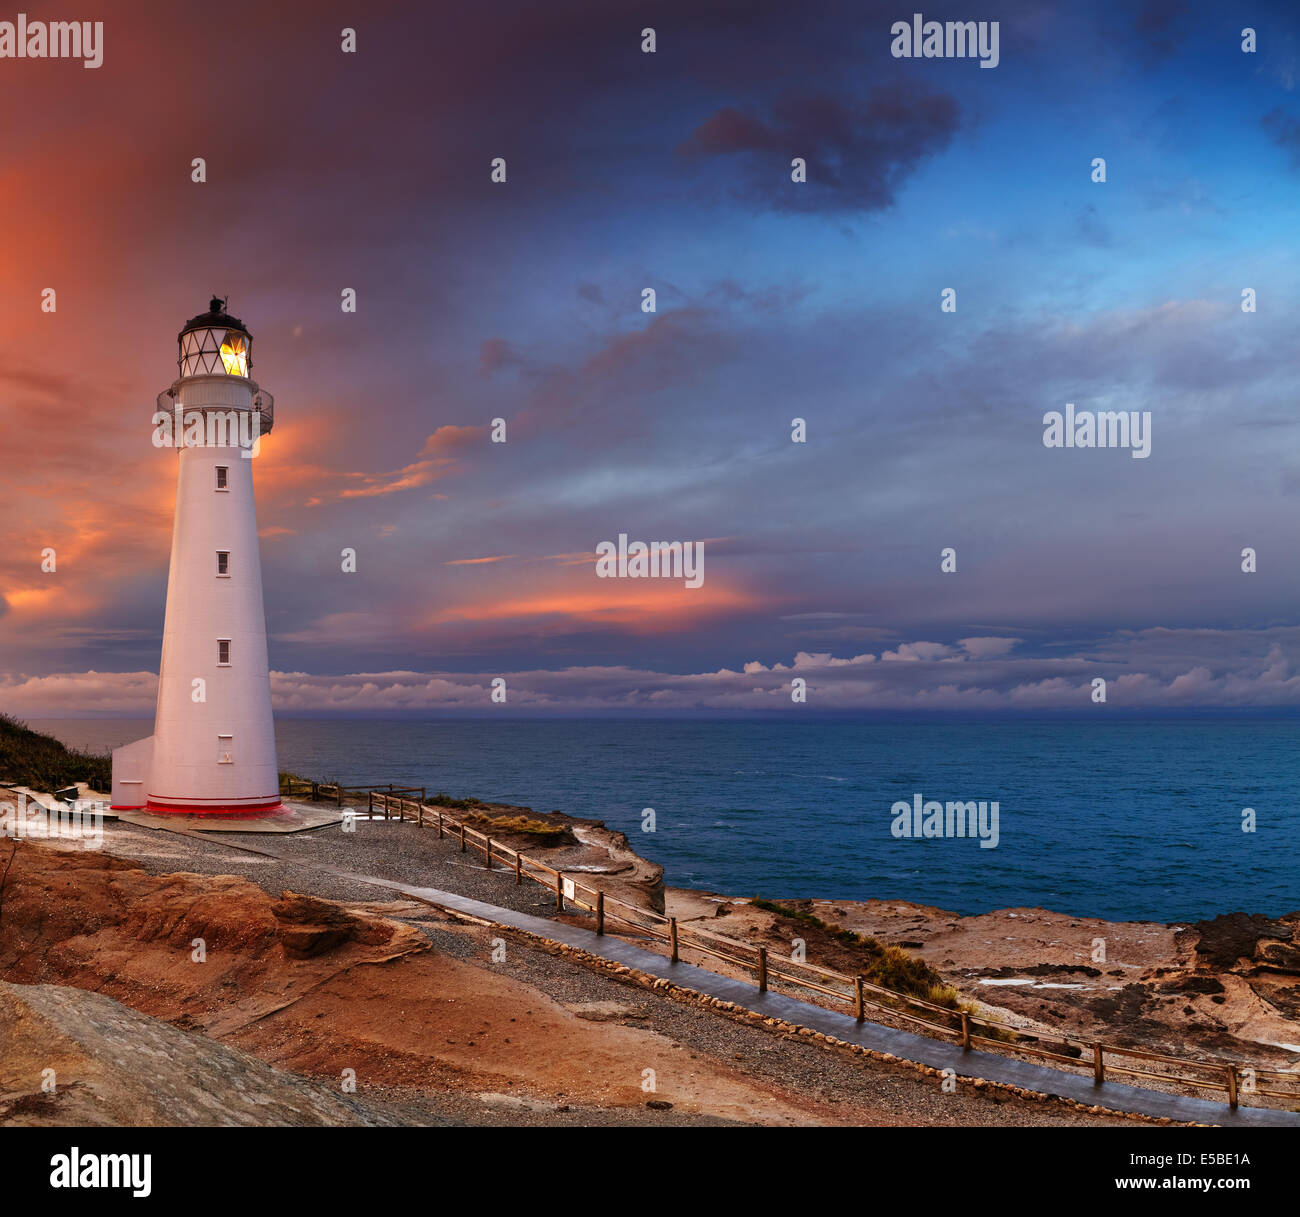 Castle Point Lighthouse, Sonnenuntergang, Wairarapa, Neuseeland Stockbild